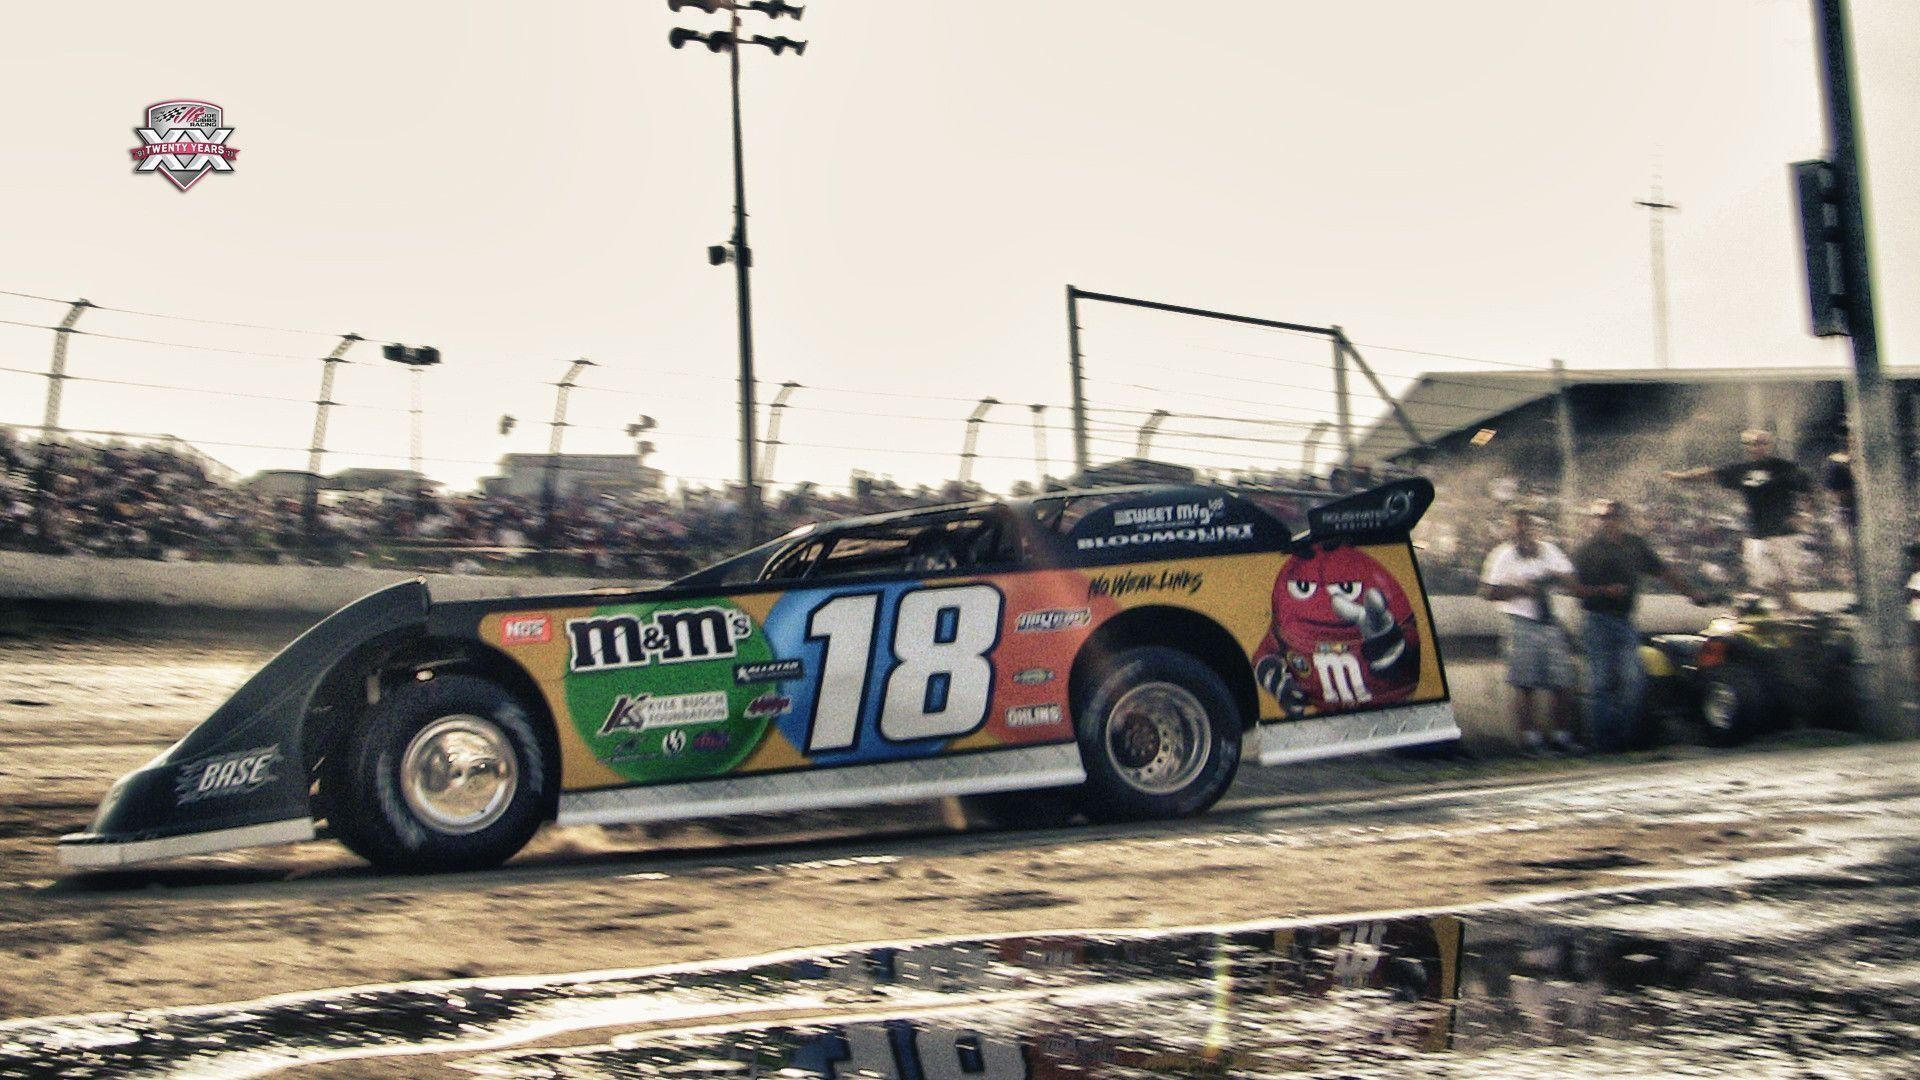 Wallpapers By Wicked Shadows Jimmie Johnson Nascar Unites: Nascar Wallpapers (56+ Images